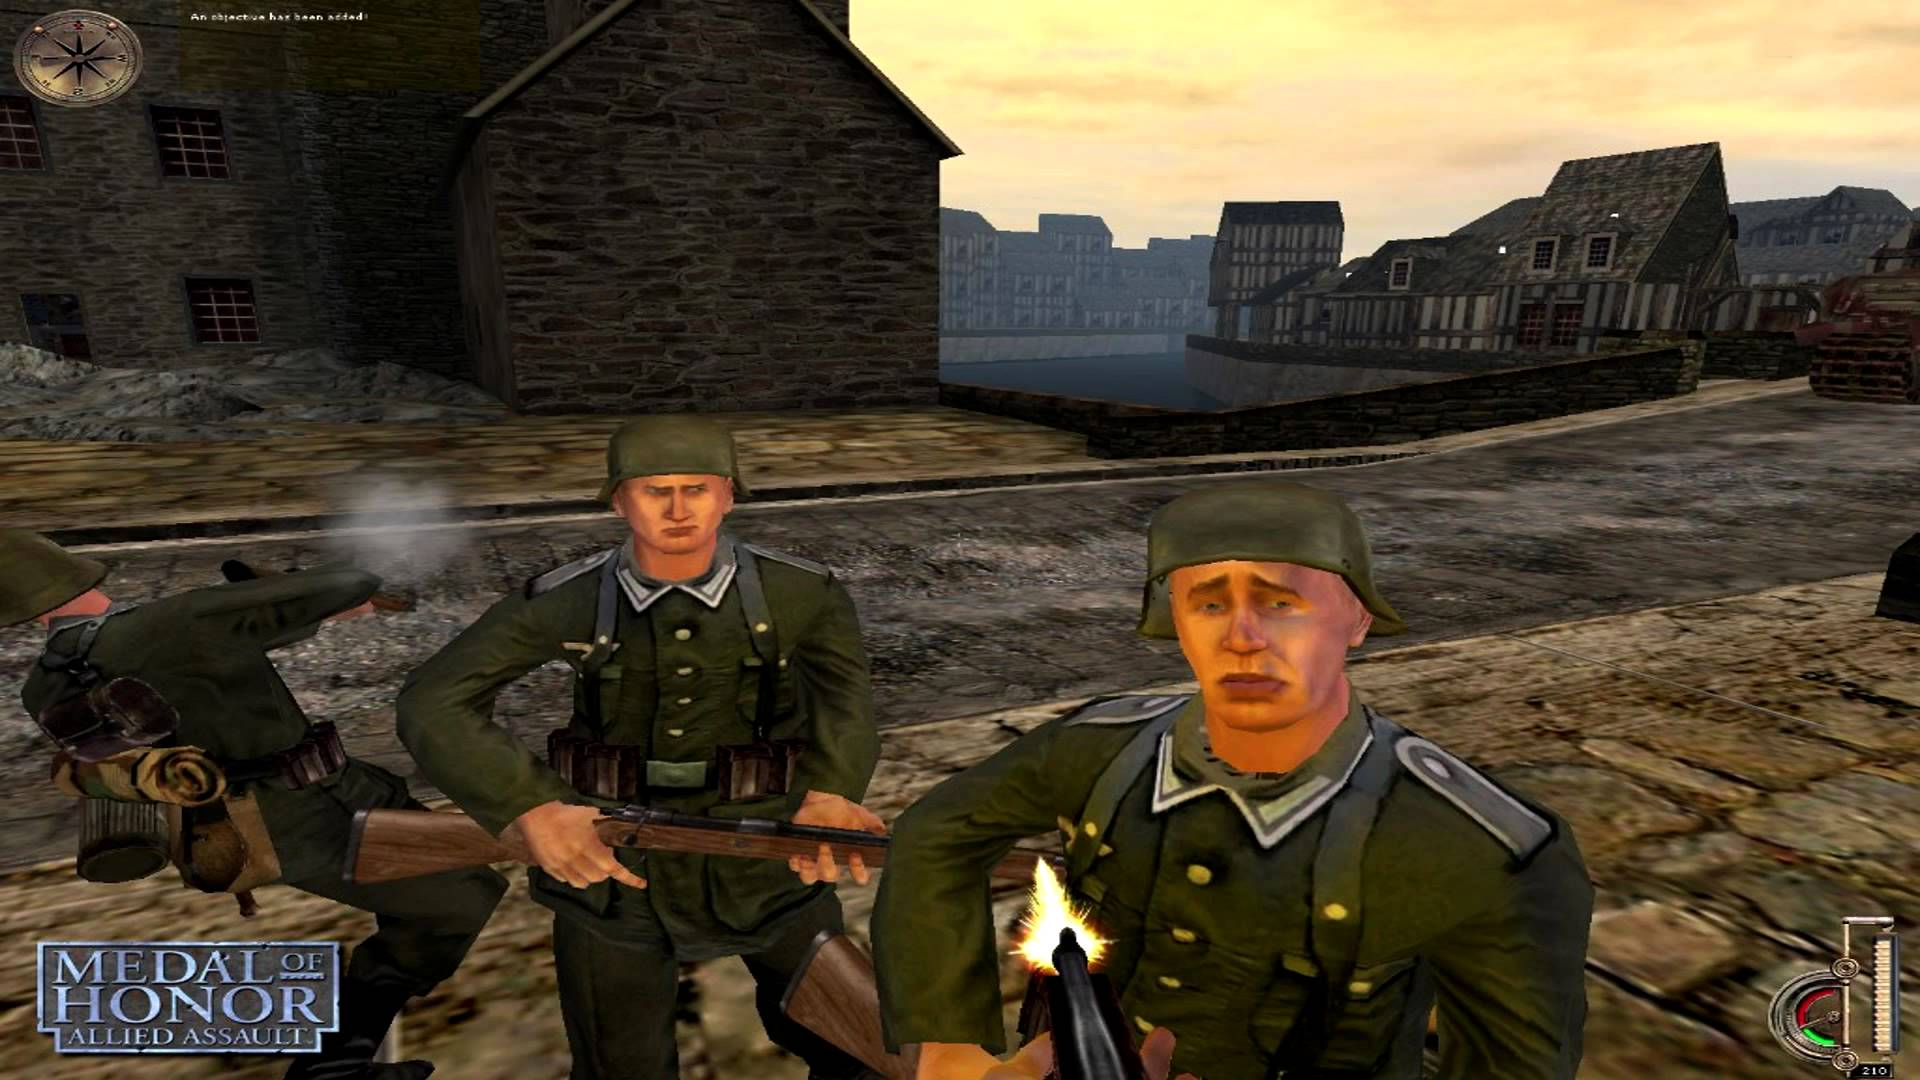 Medal of honor: allied assault game mod marcomix's real weapons.